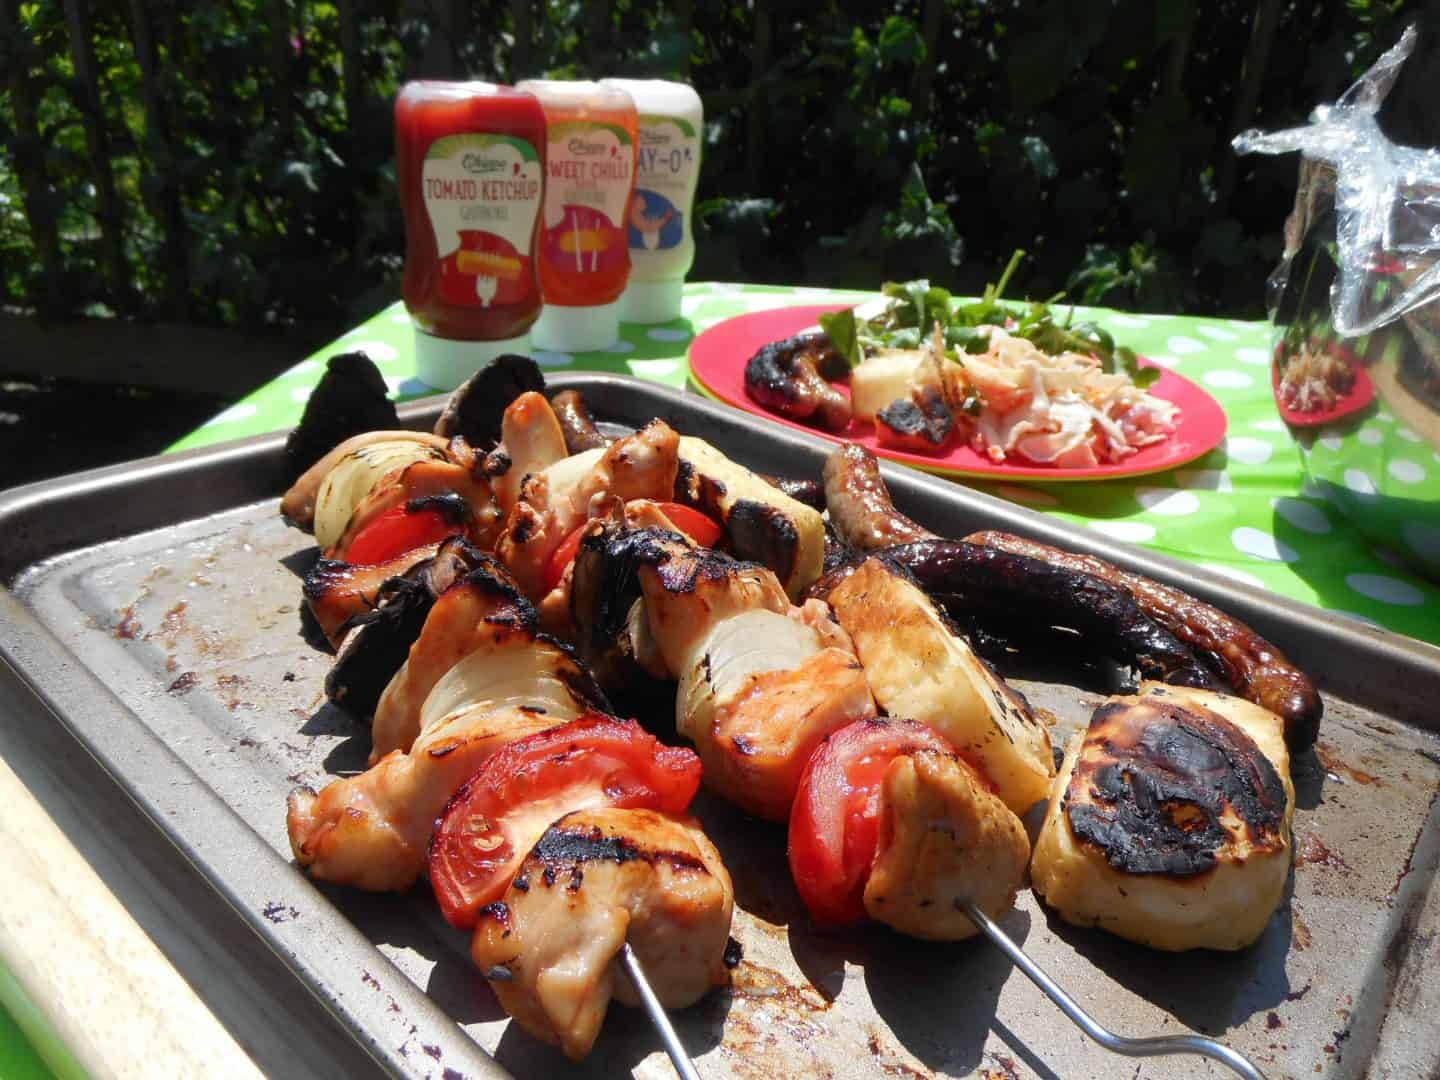 National Barbecue Week: The perfect gluten free chicken kebabs and free from coleslaw